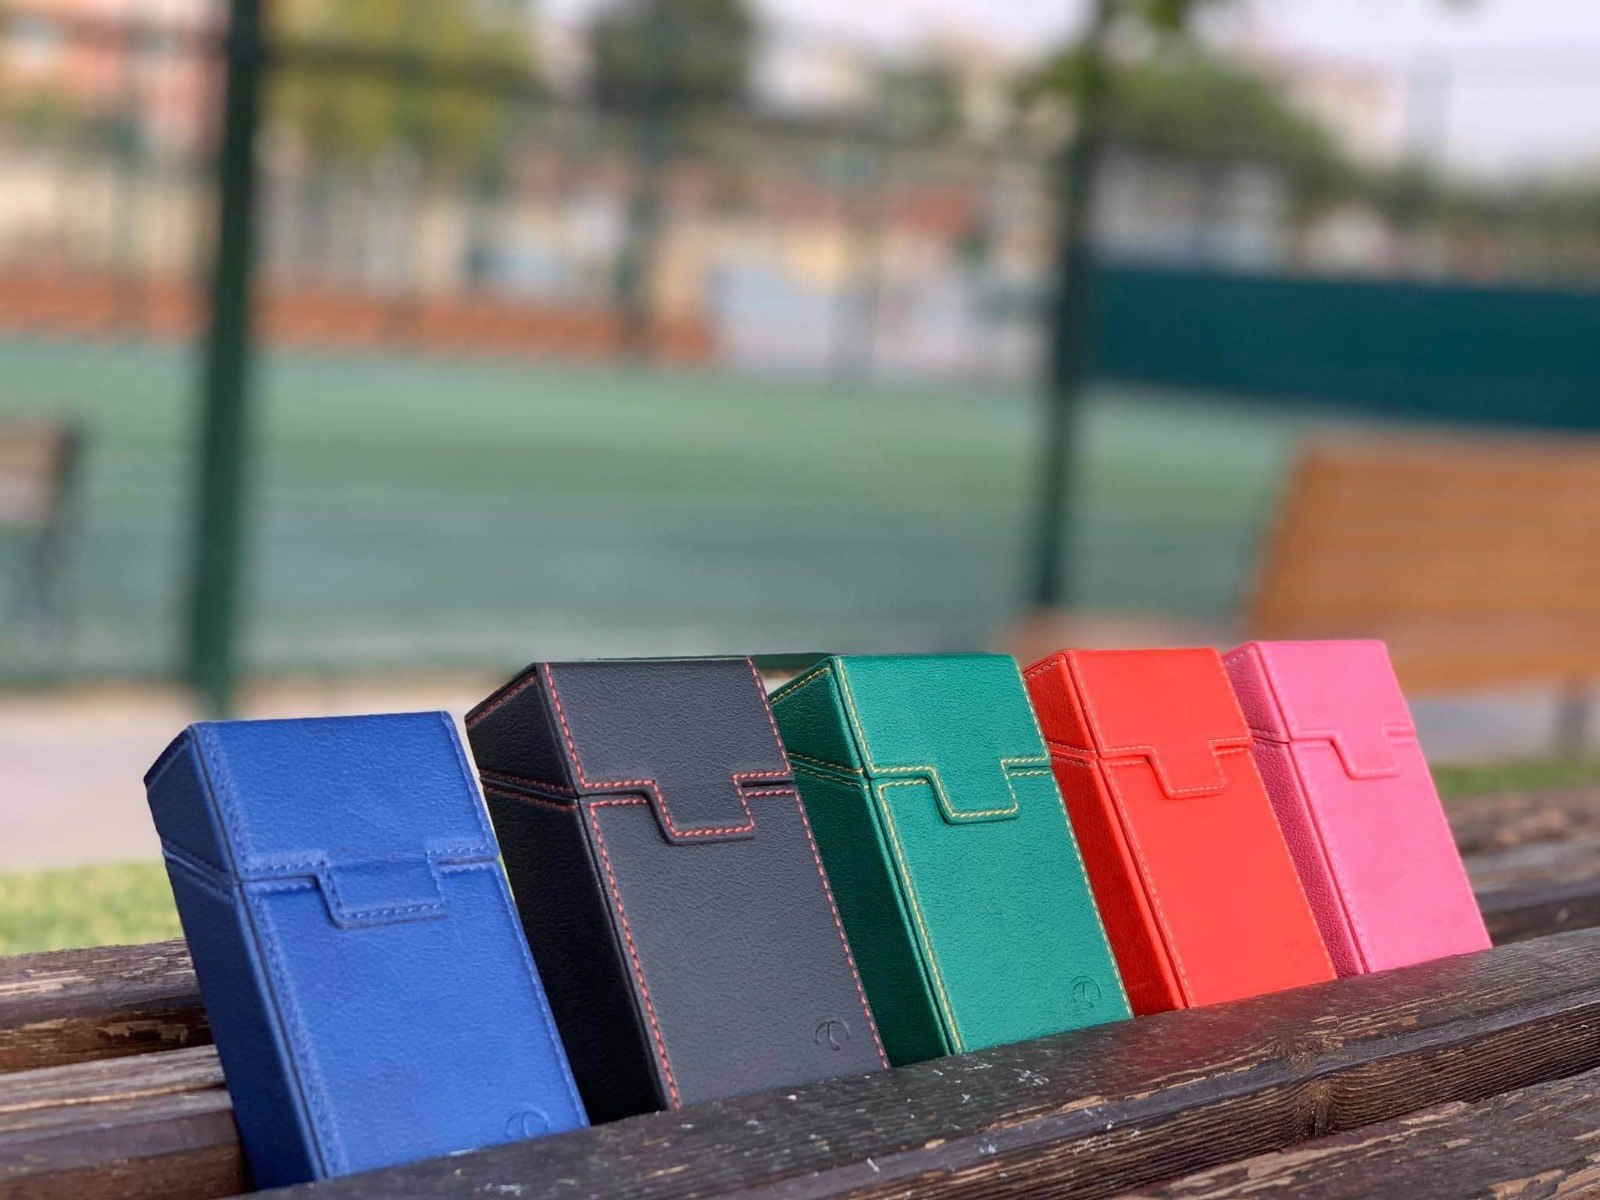 Tekin Deri Released Its Newest Product, Leather Cigarette Cases, for Large Global Production